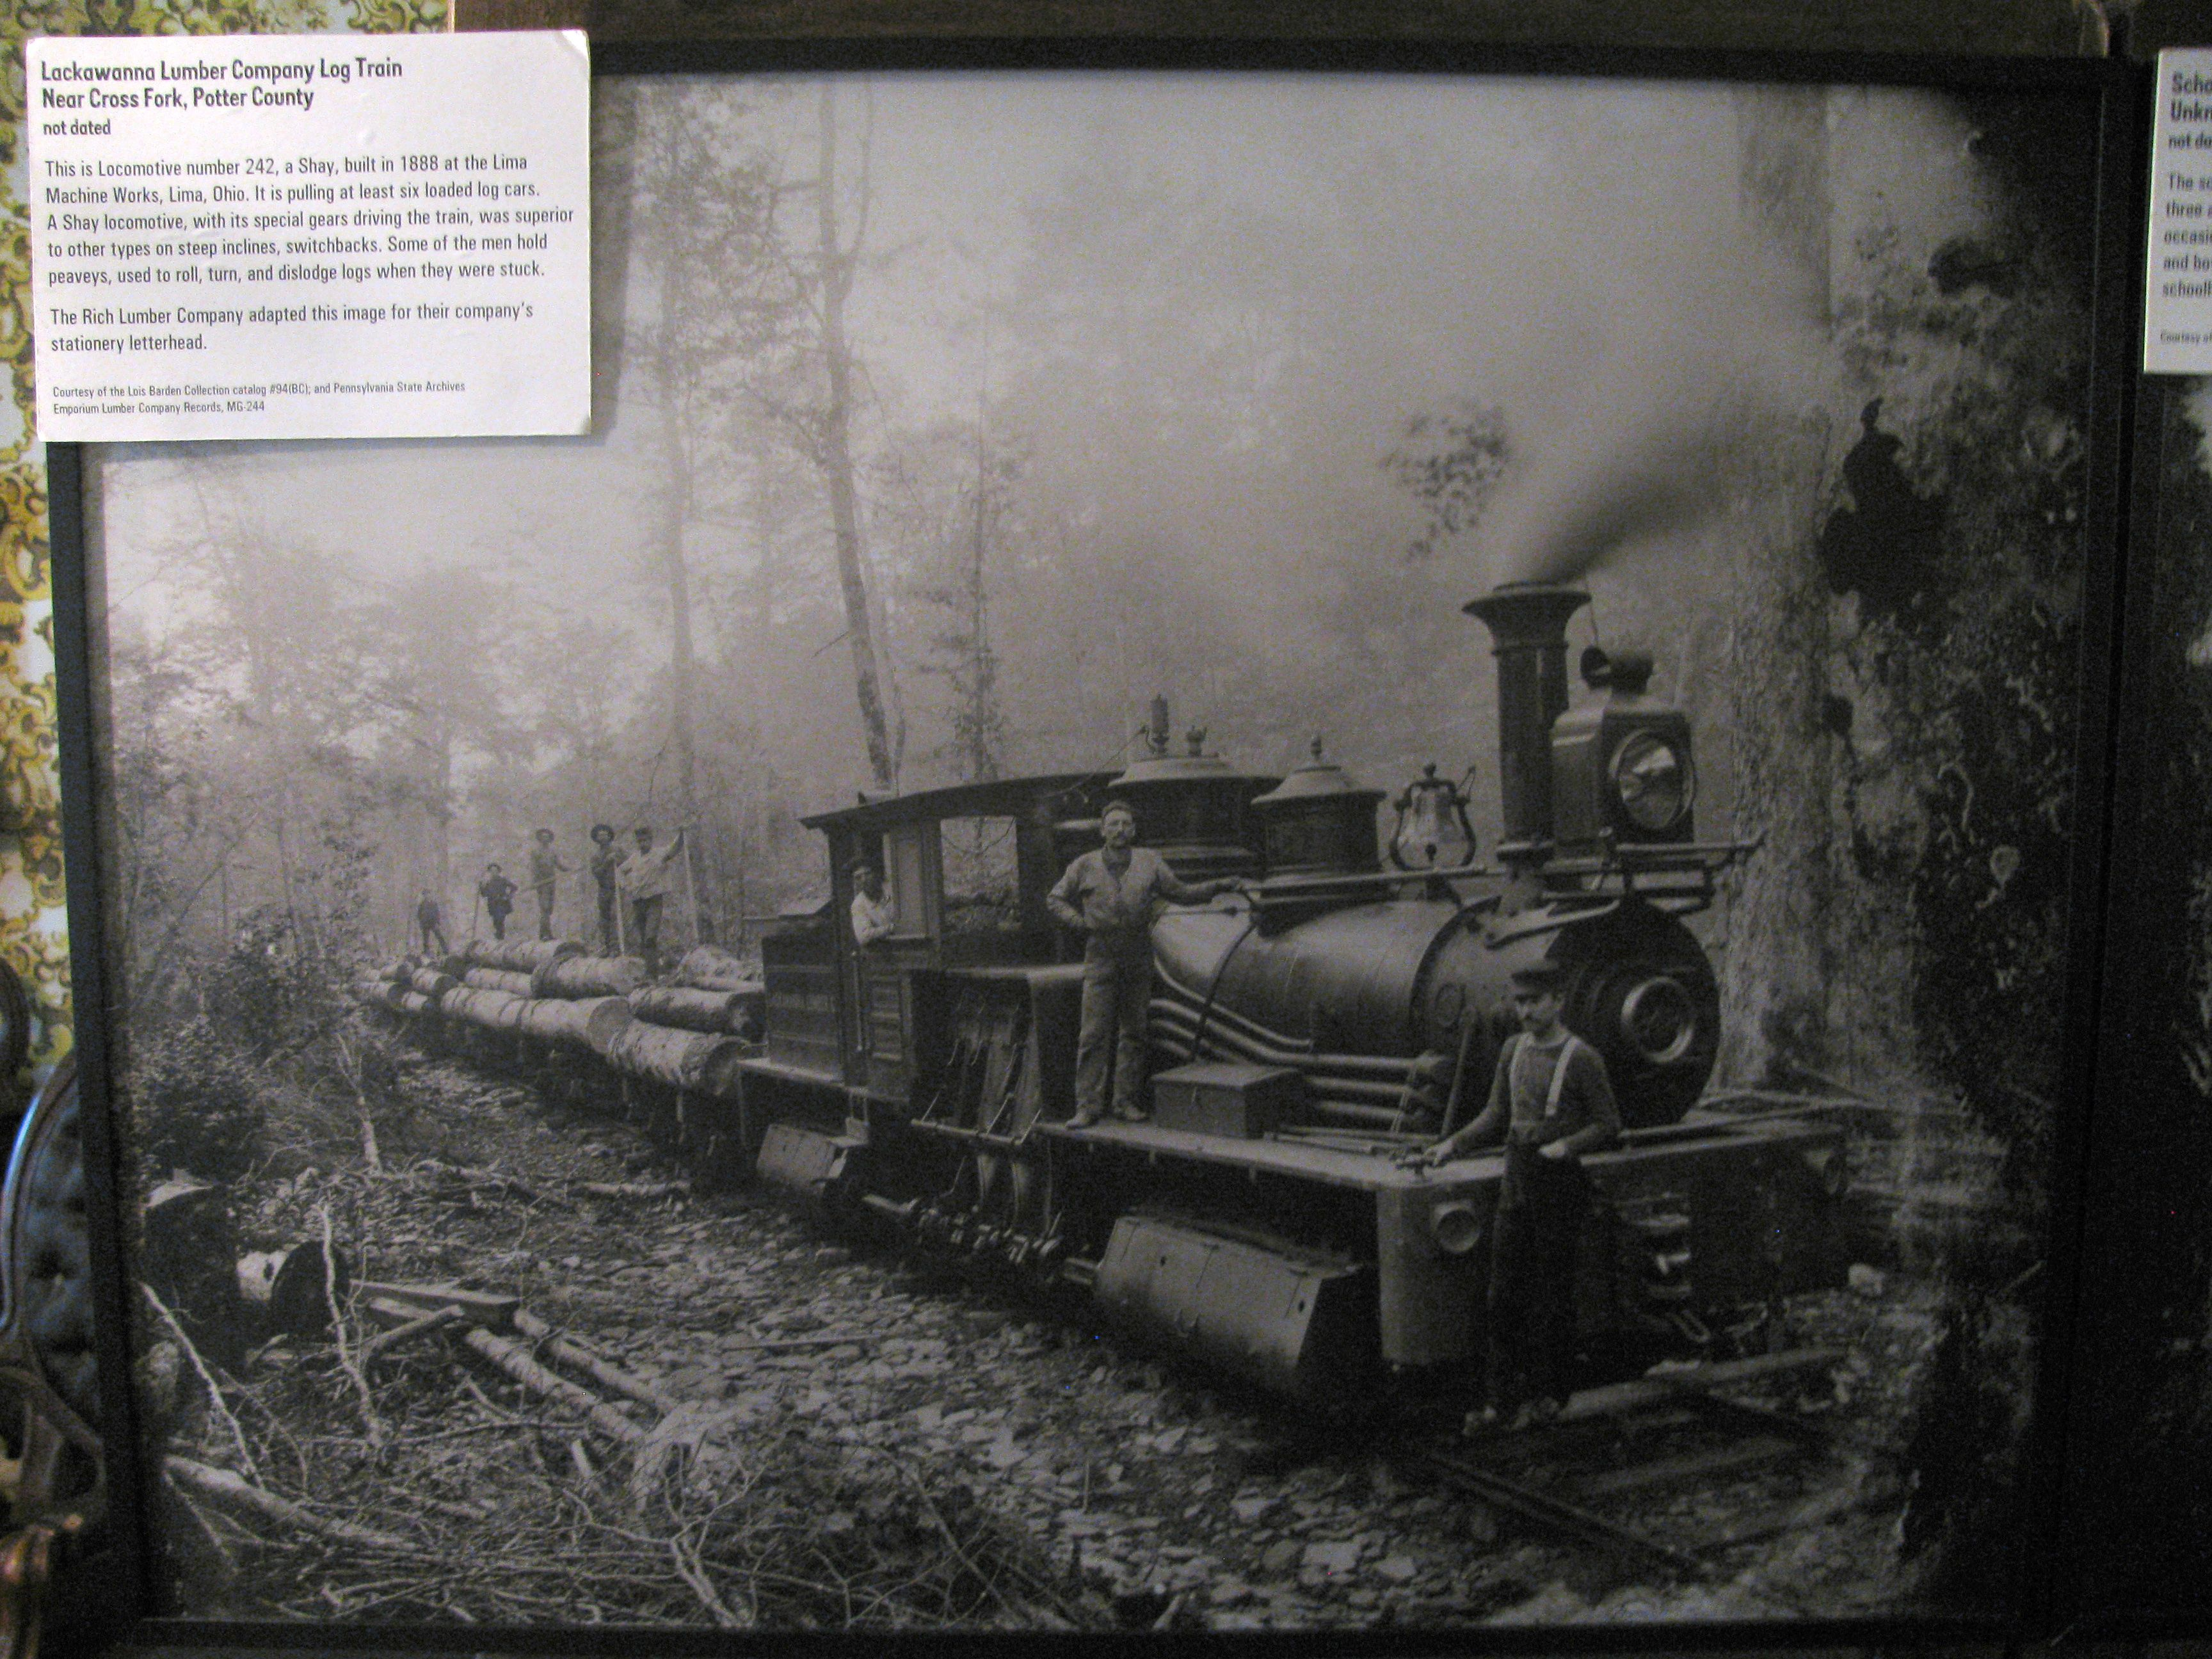 Mississippi tallahatchie county tippo - Lackawanna Lumber County Log Train Near Cross Fork Potter County